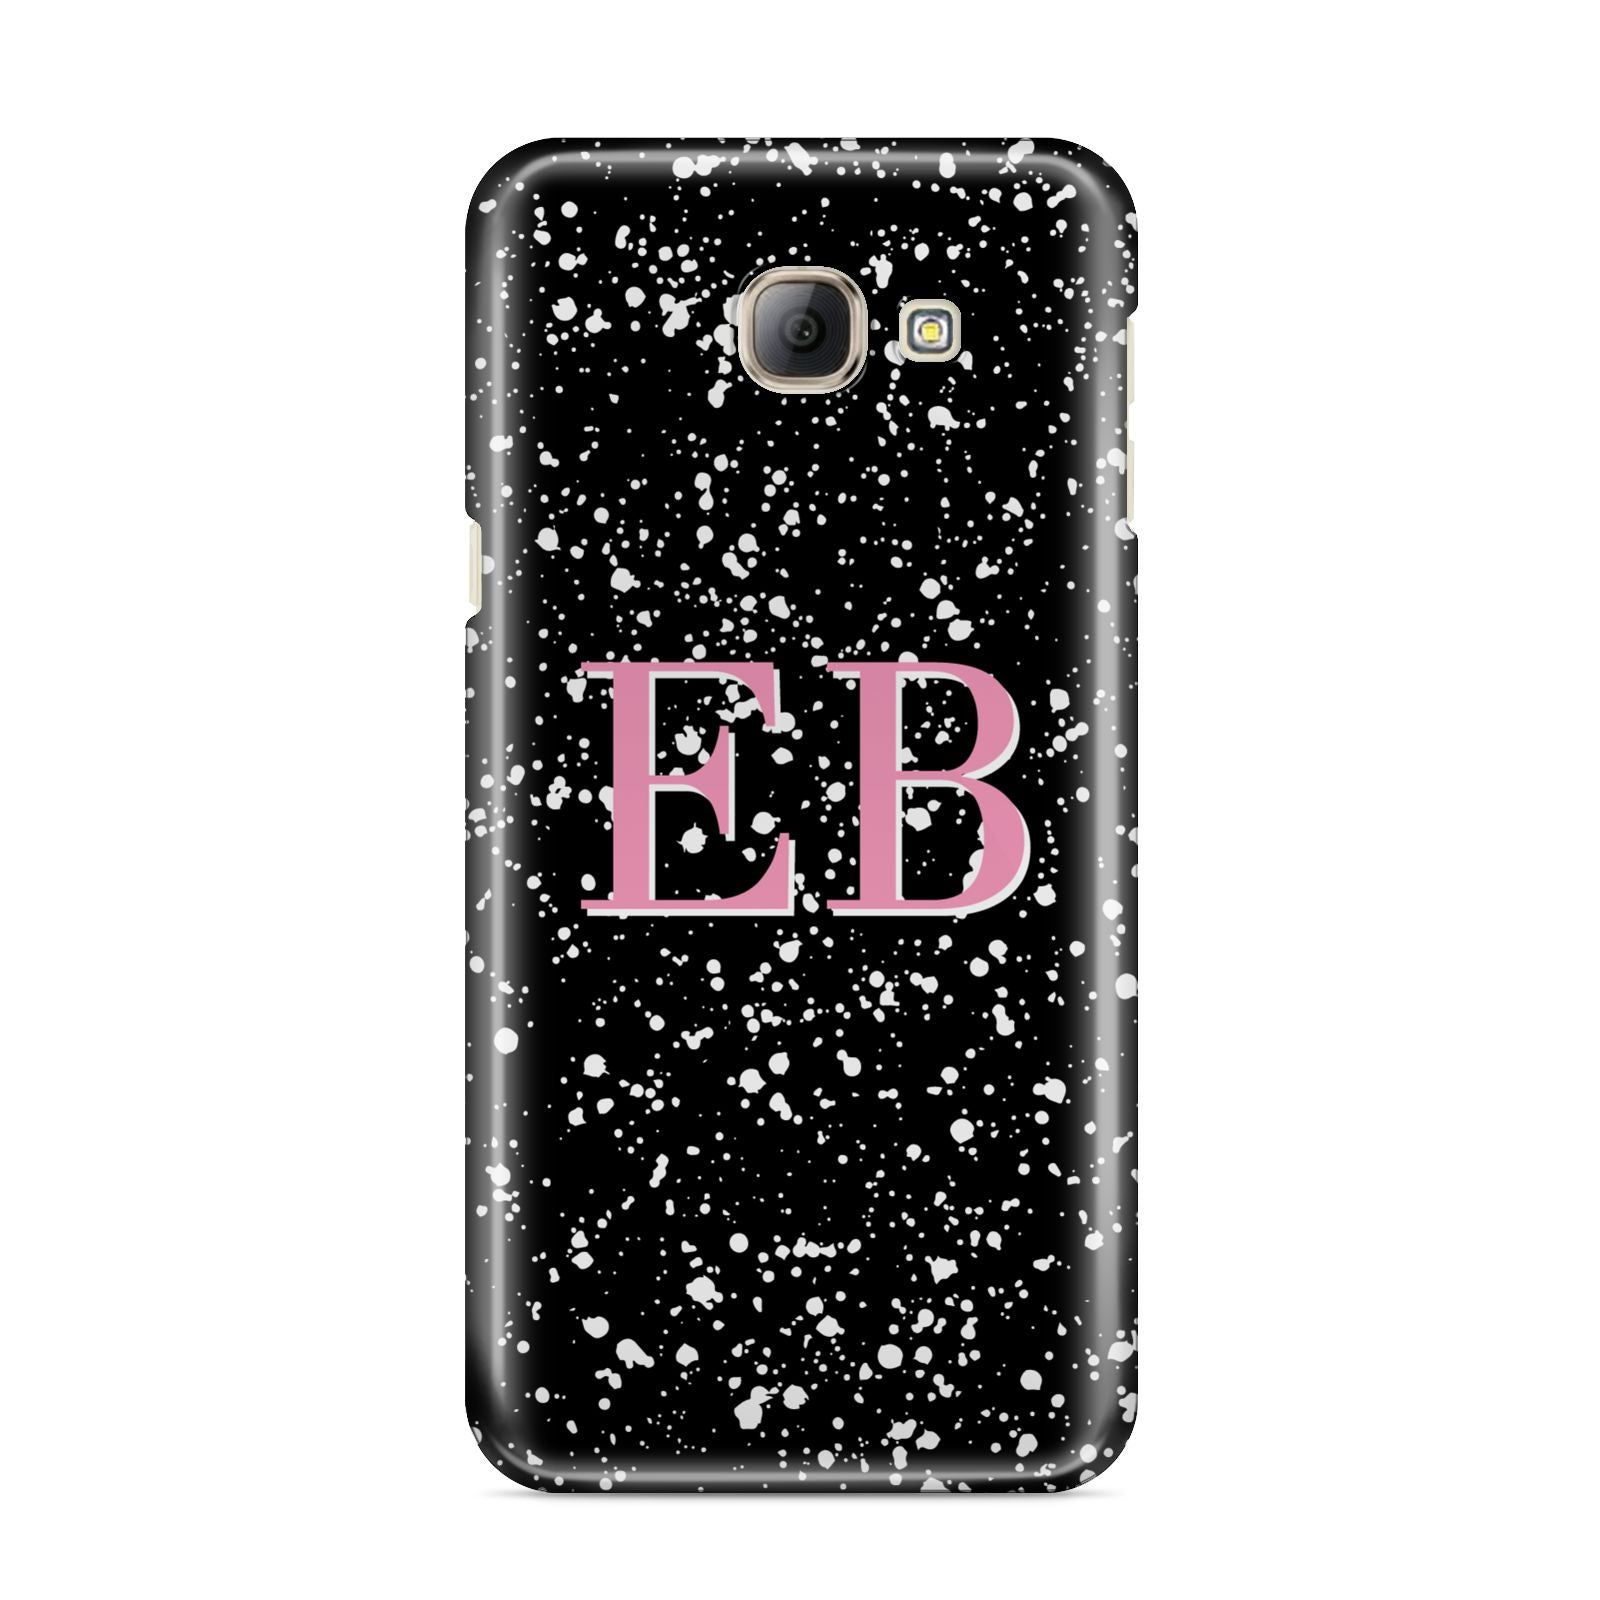 Personalised Black Ink Splat Initials Samsung Galaxy A8 2016 Case